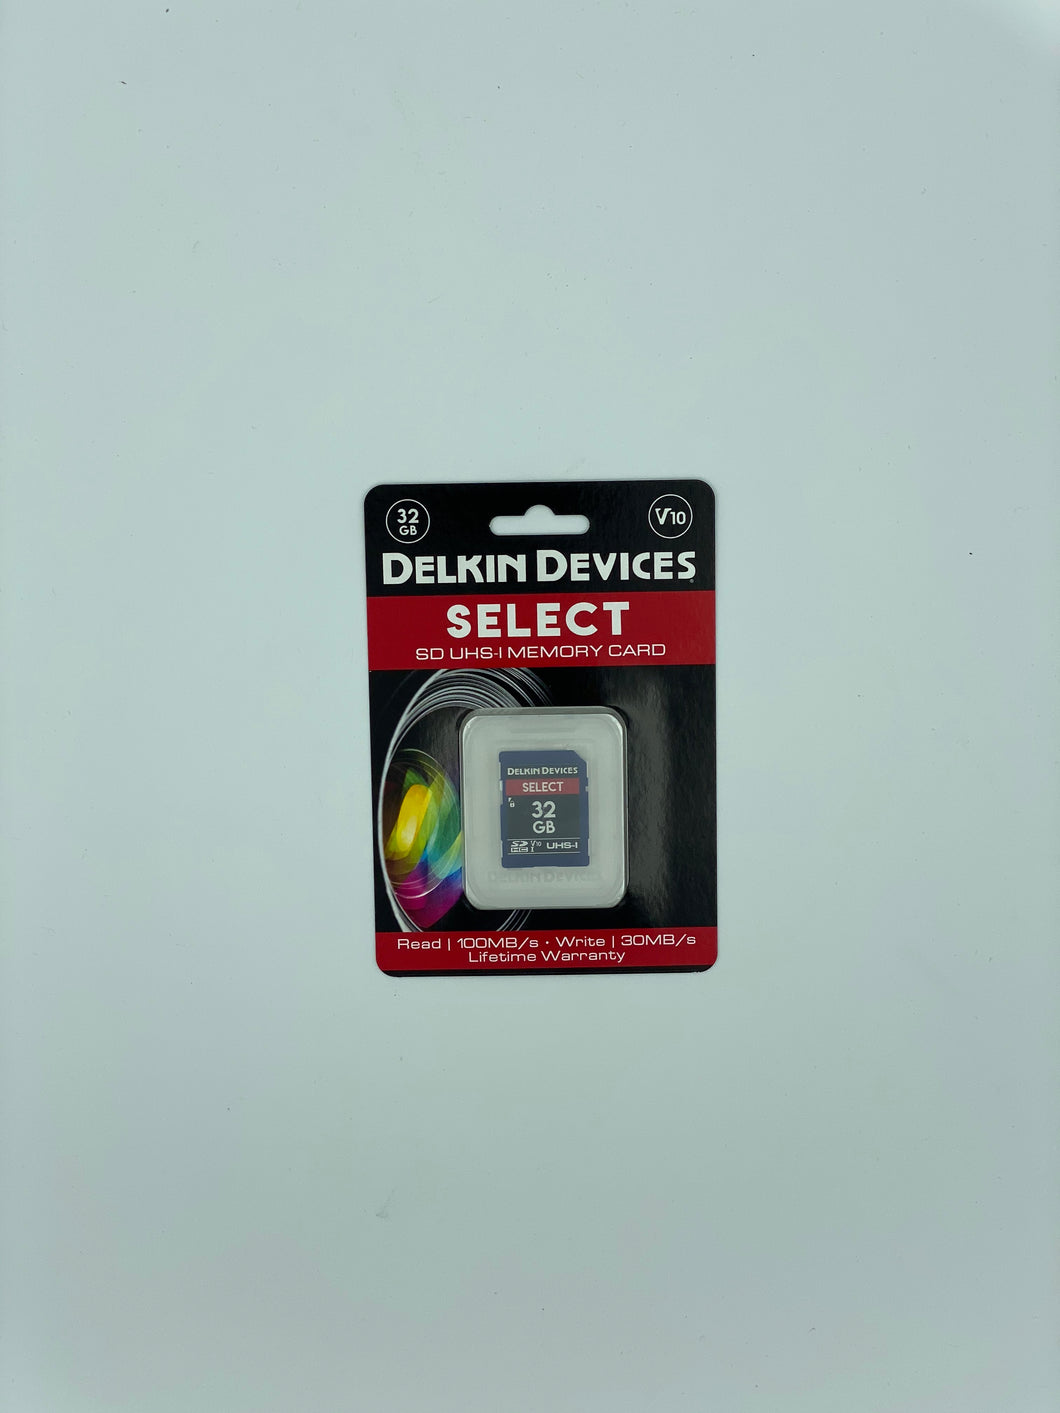 Delkin Devices 32 GB SD Memory Card